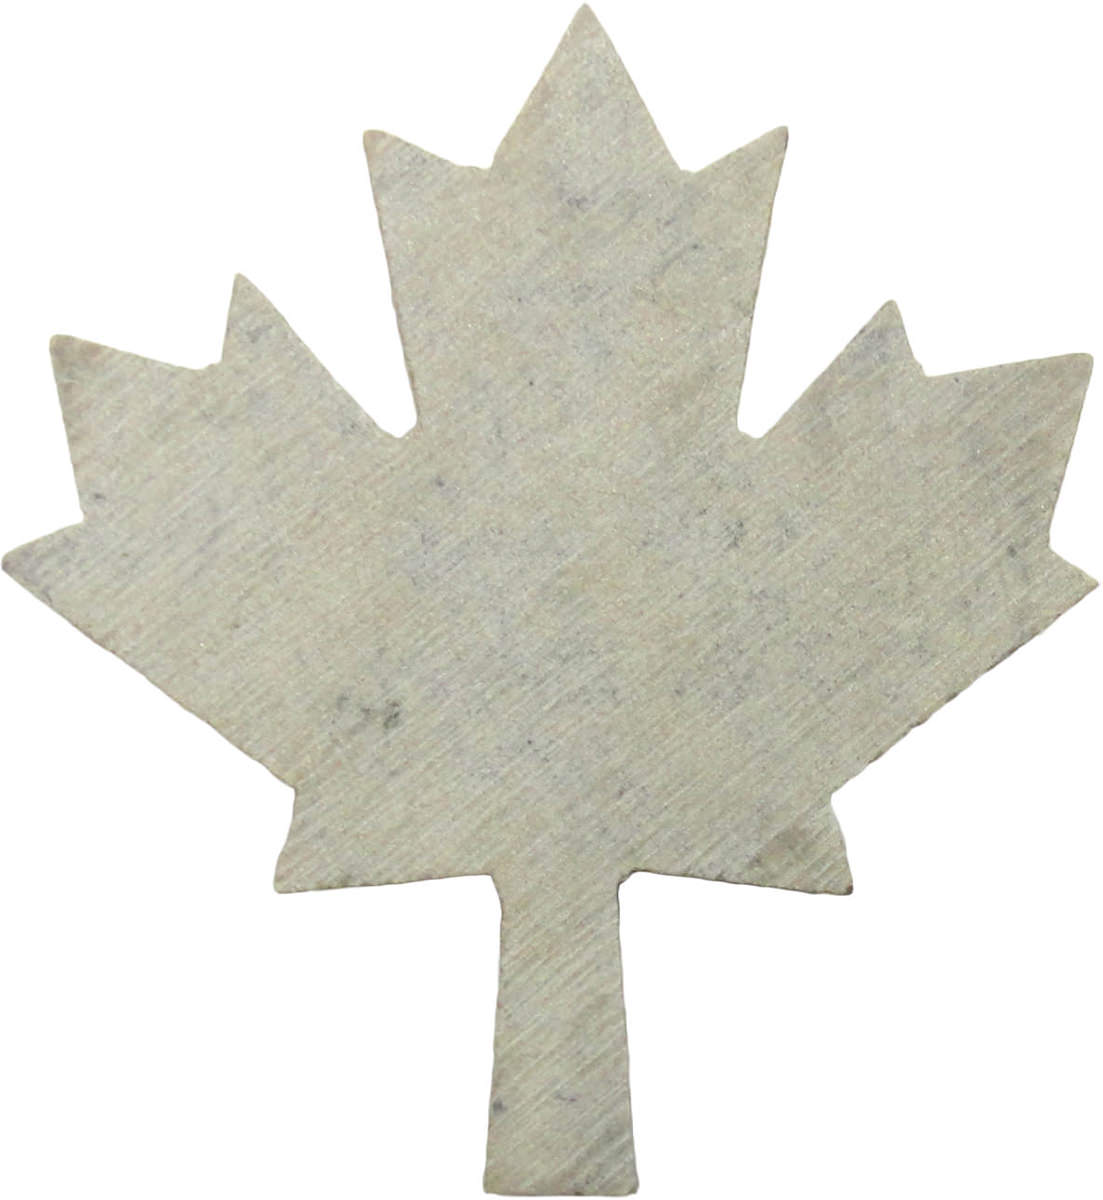 Soapstone Maple Leaf Sculpture Carving Kit